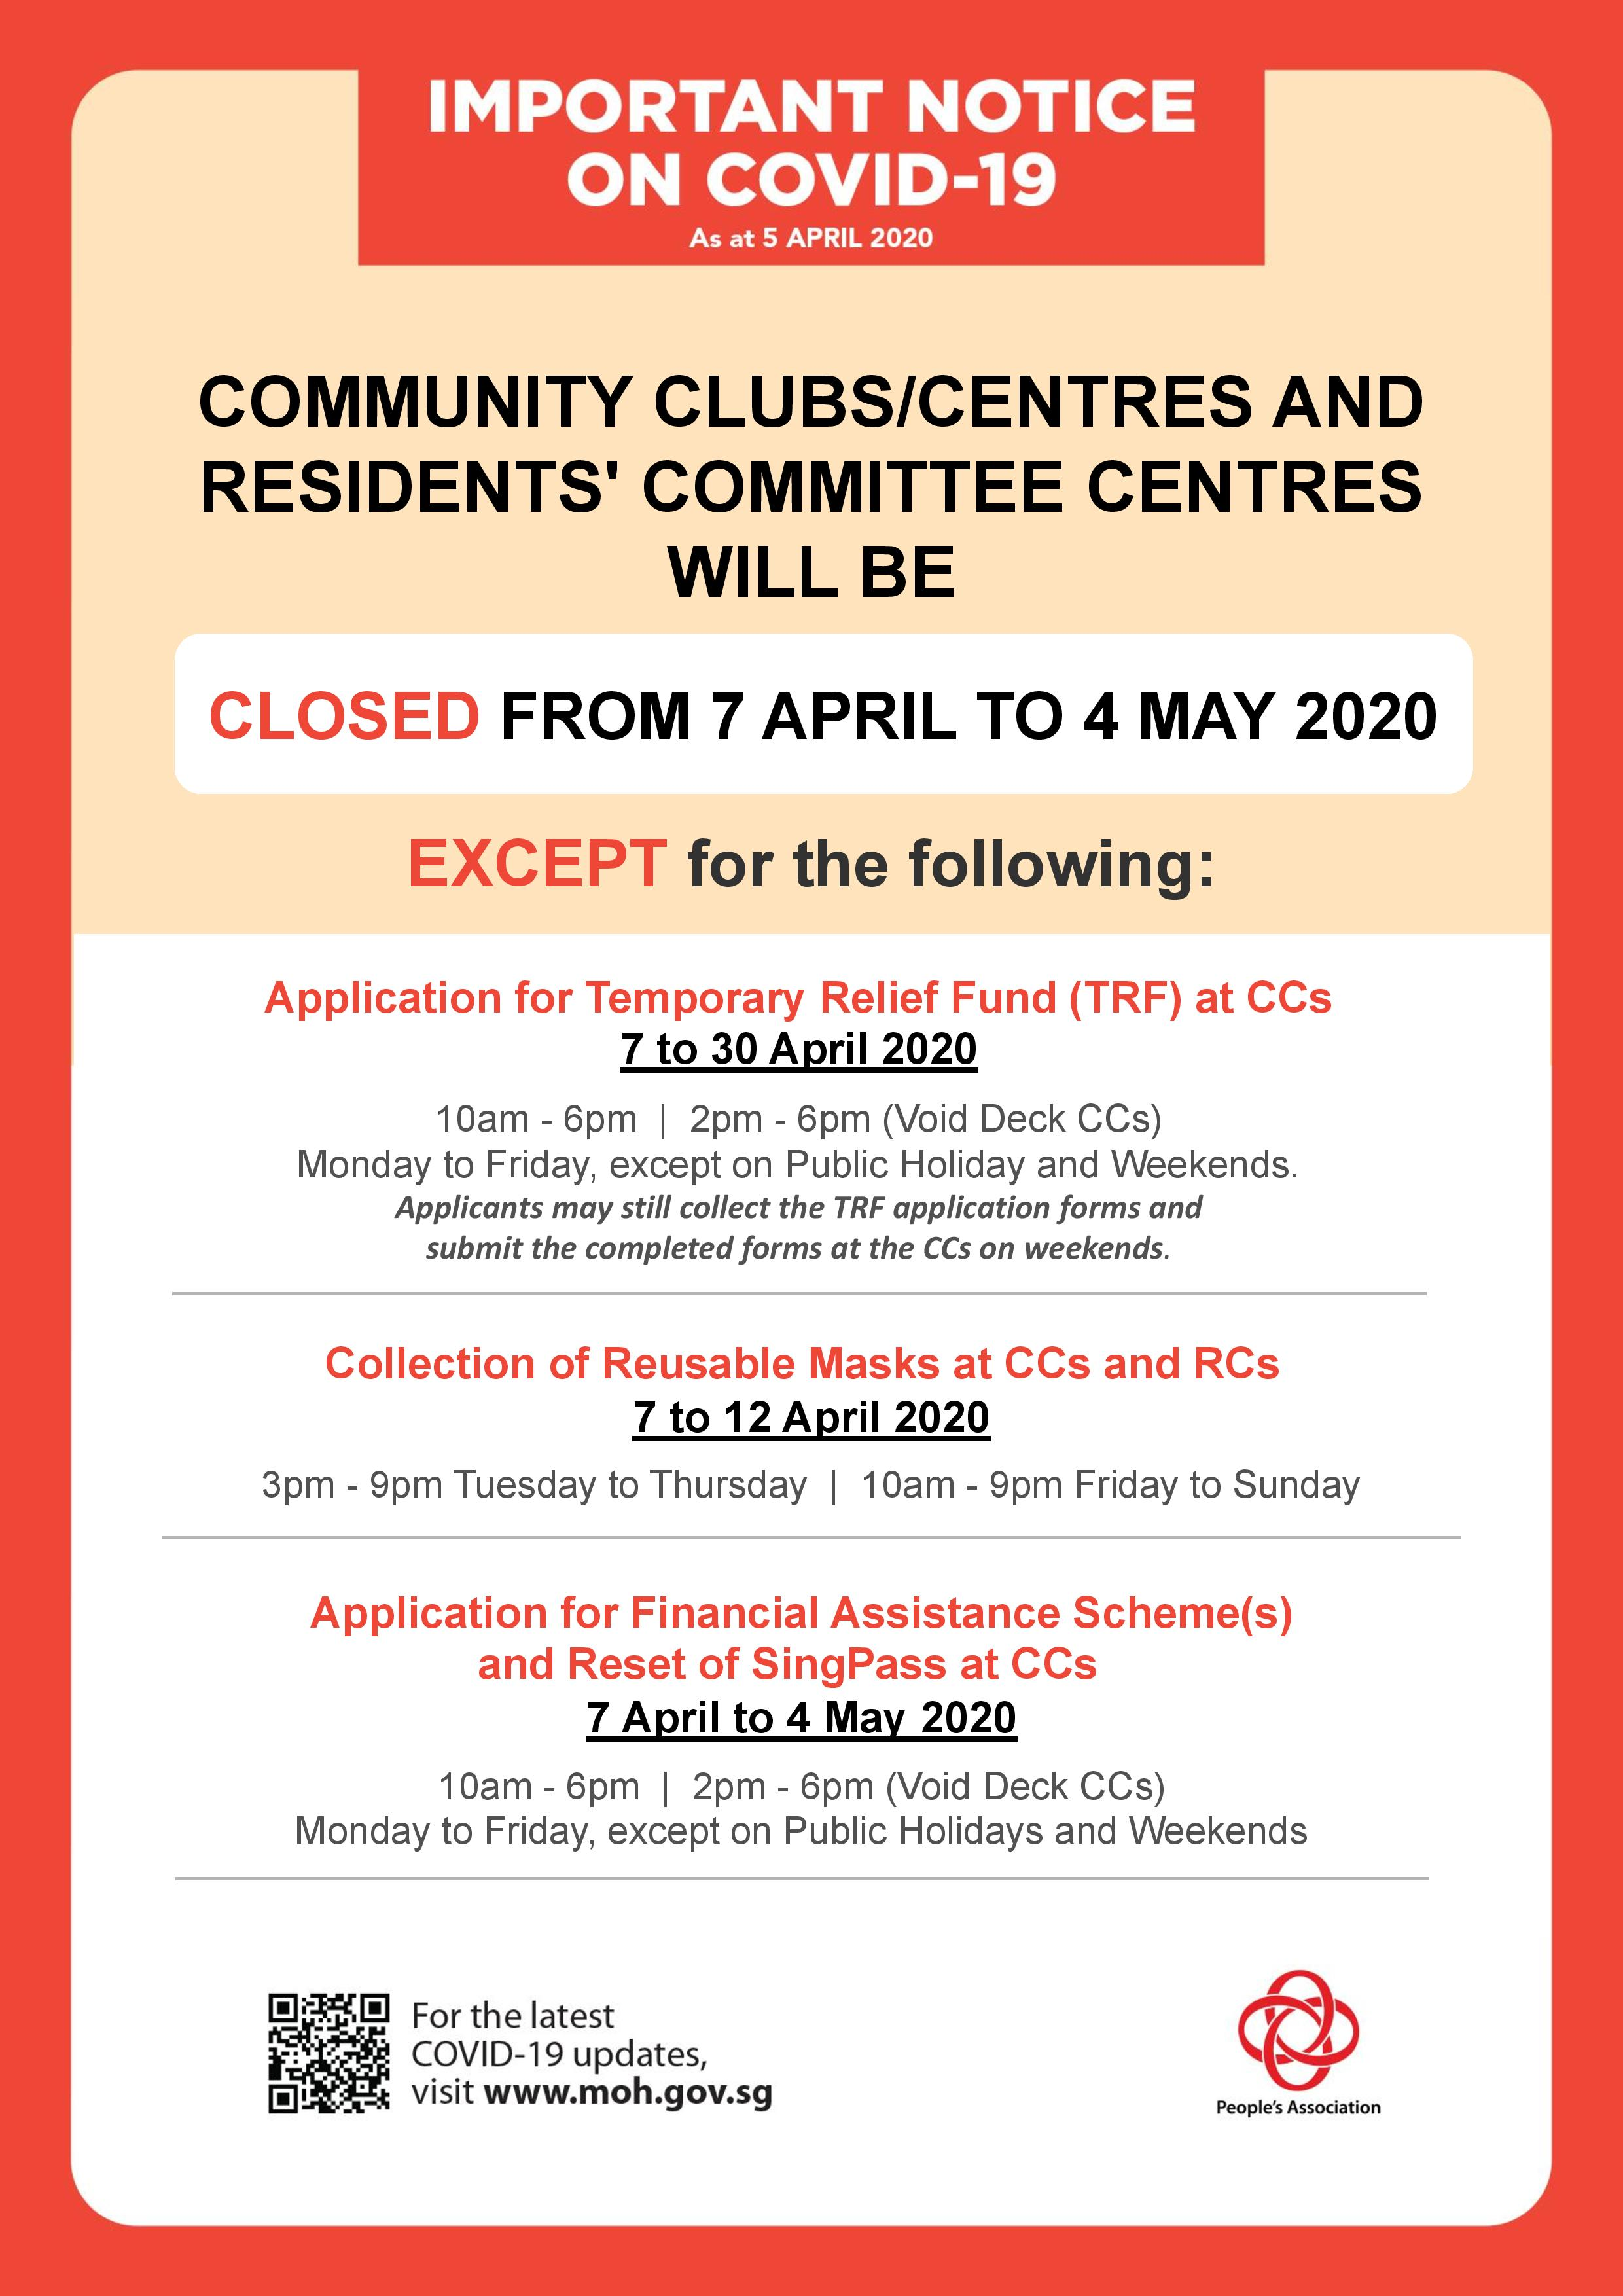 Closure of Community Clubs and Residents' Committee Centres except for application for Temporary Relief Fund, Collection of reusable masks and other essential services